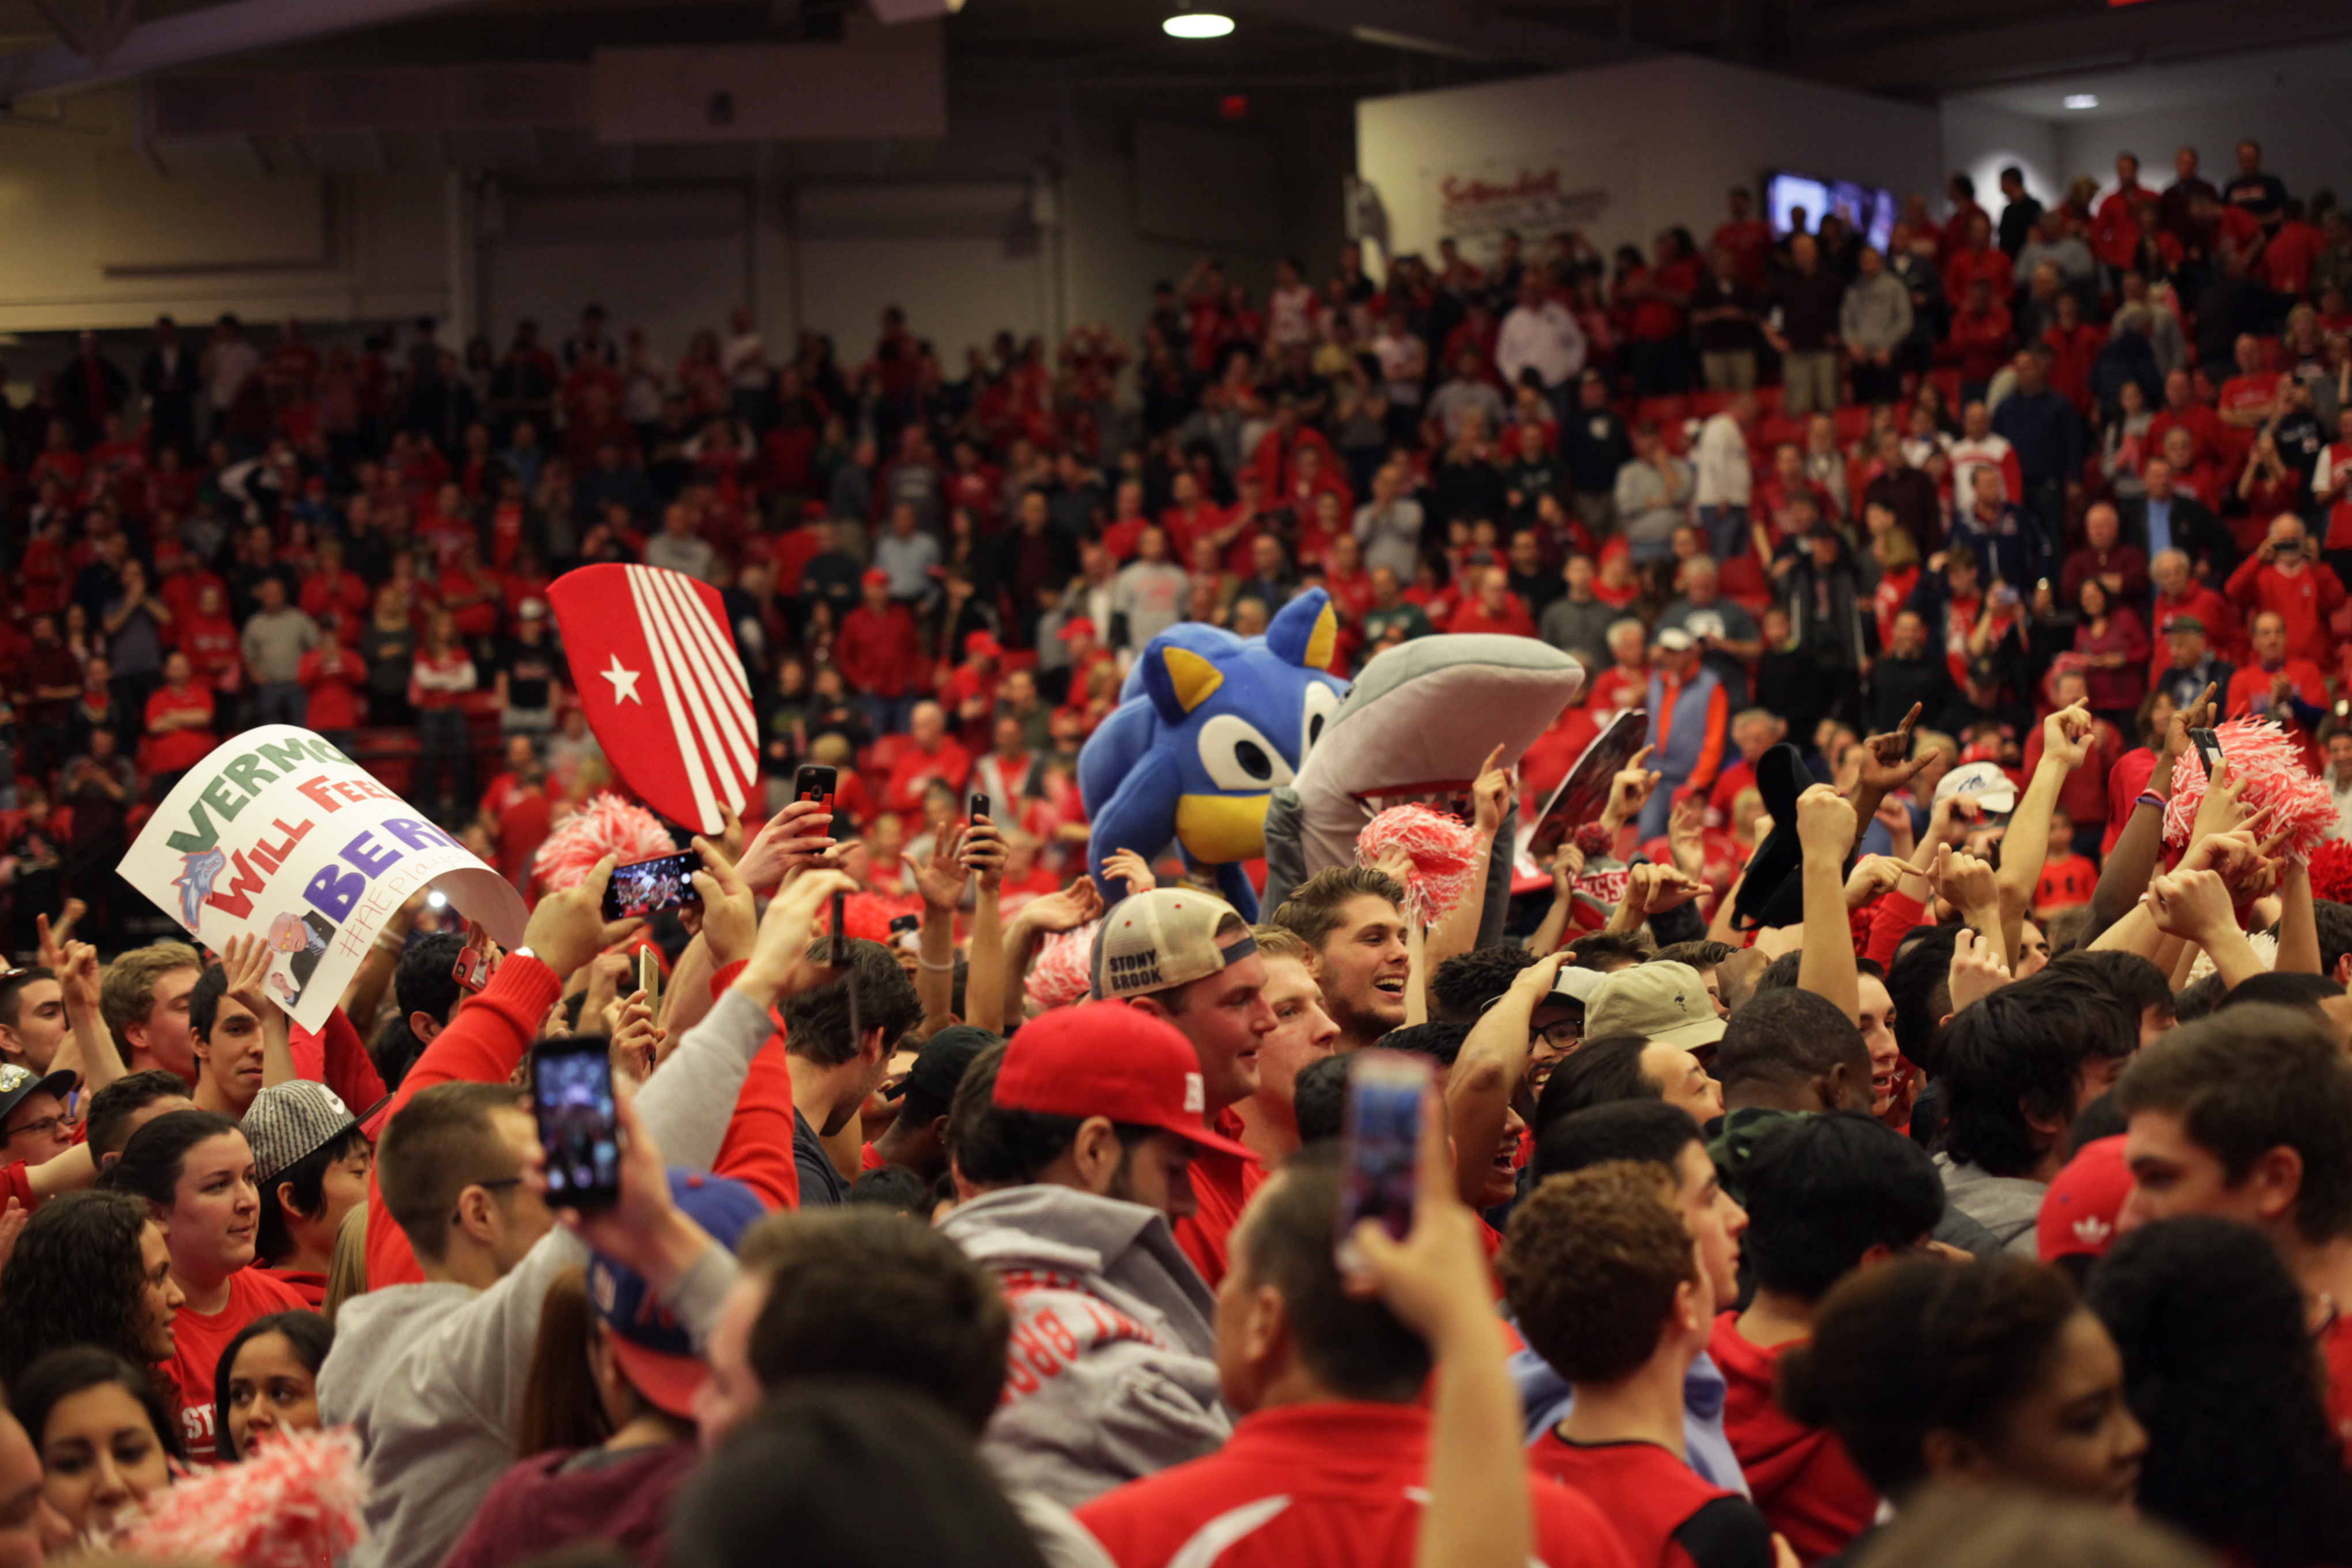 Stony Brook fans storm the court to celebrate their comeback victory against Vermont in the America East Men's Basketball championship game. CHRISTOPHER CAMERON/THE STATESMAN